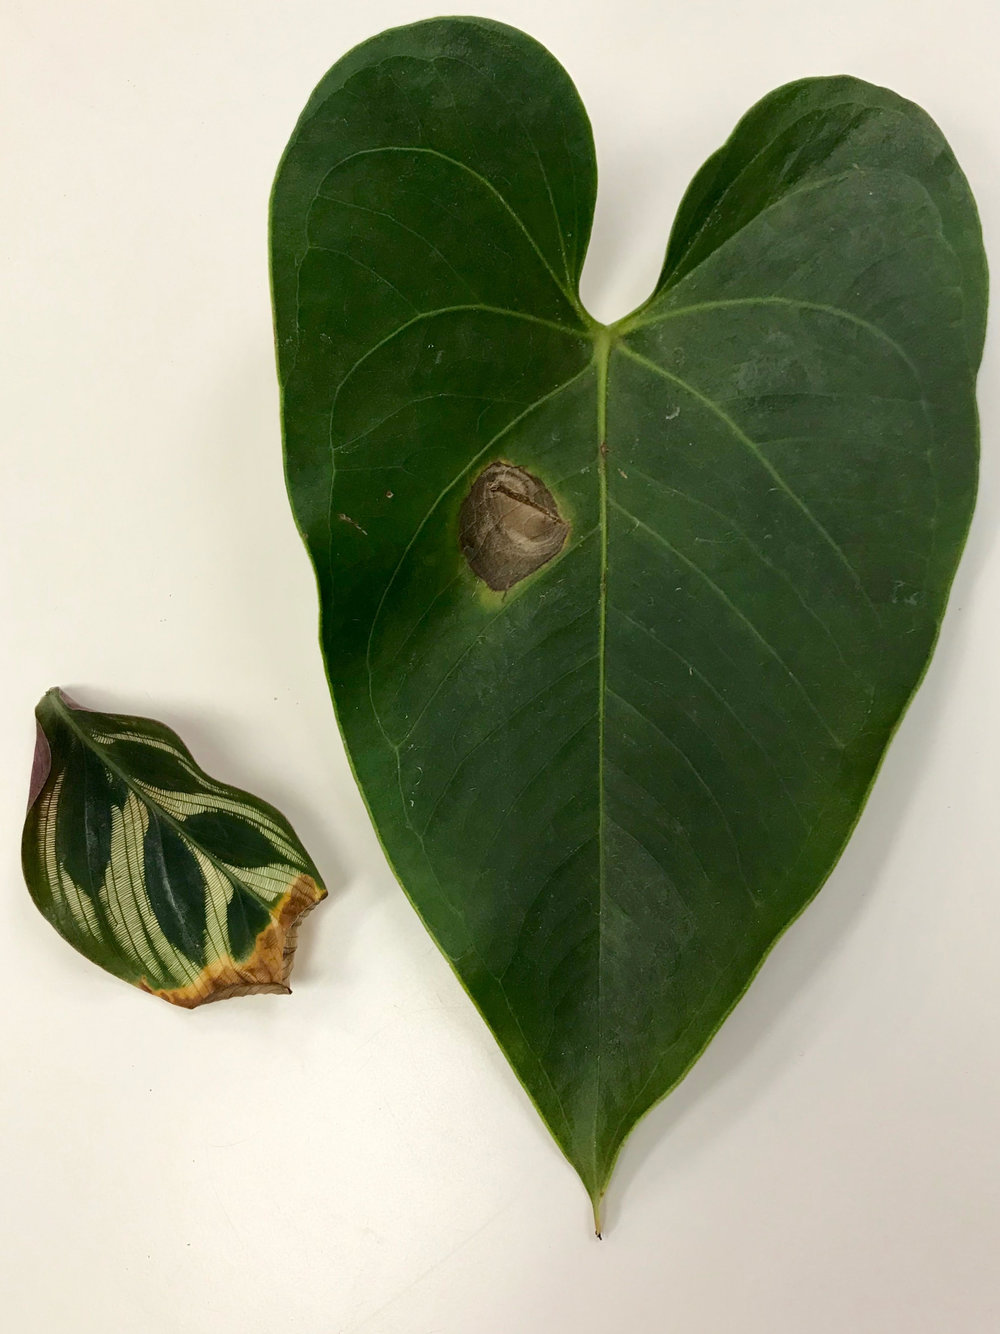 Browning - Brown edges or tips is a sign of dryness as shown in the calathea leaf on the left. Increase humidity to avoid crispy leaves. (see suggestions in last month's post)The large anthurium leaf on the right has a brown spot originating in the middle of the leaf, a sign of fungus. This leaf should be cut off immediately to avoid spread to the rest of your plant. The plant will thank you by producing a healthy new leaf very soon!